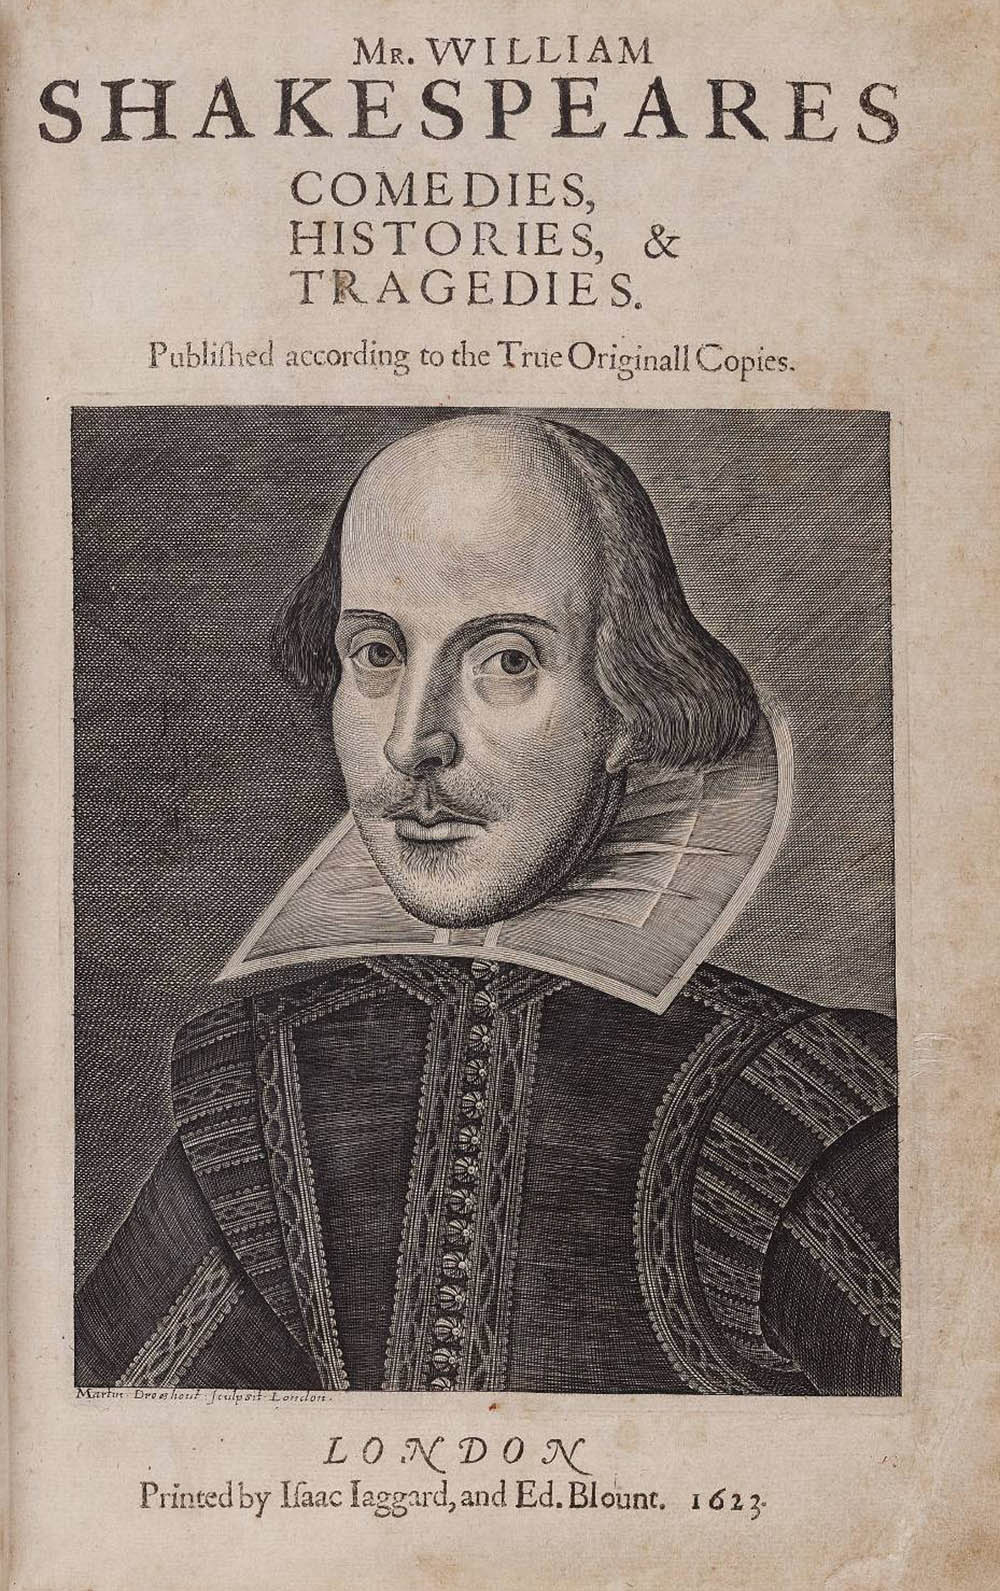 first folio of William Shakespeare's works